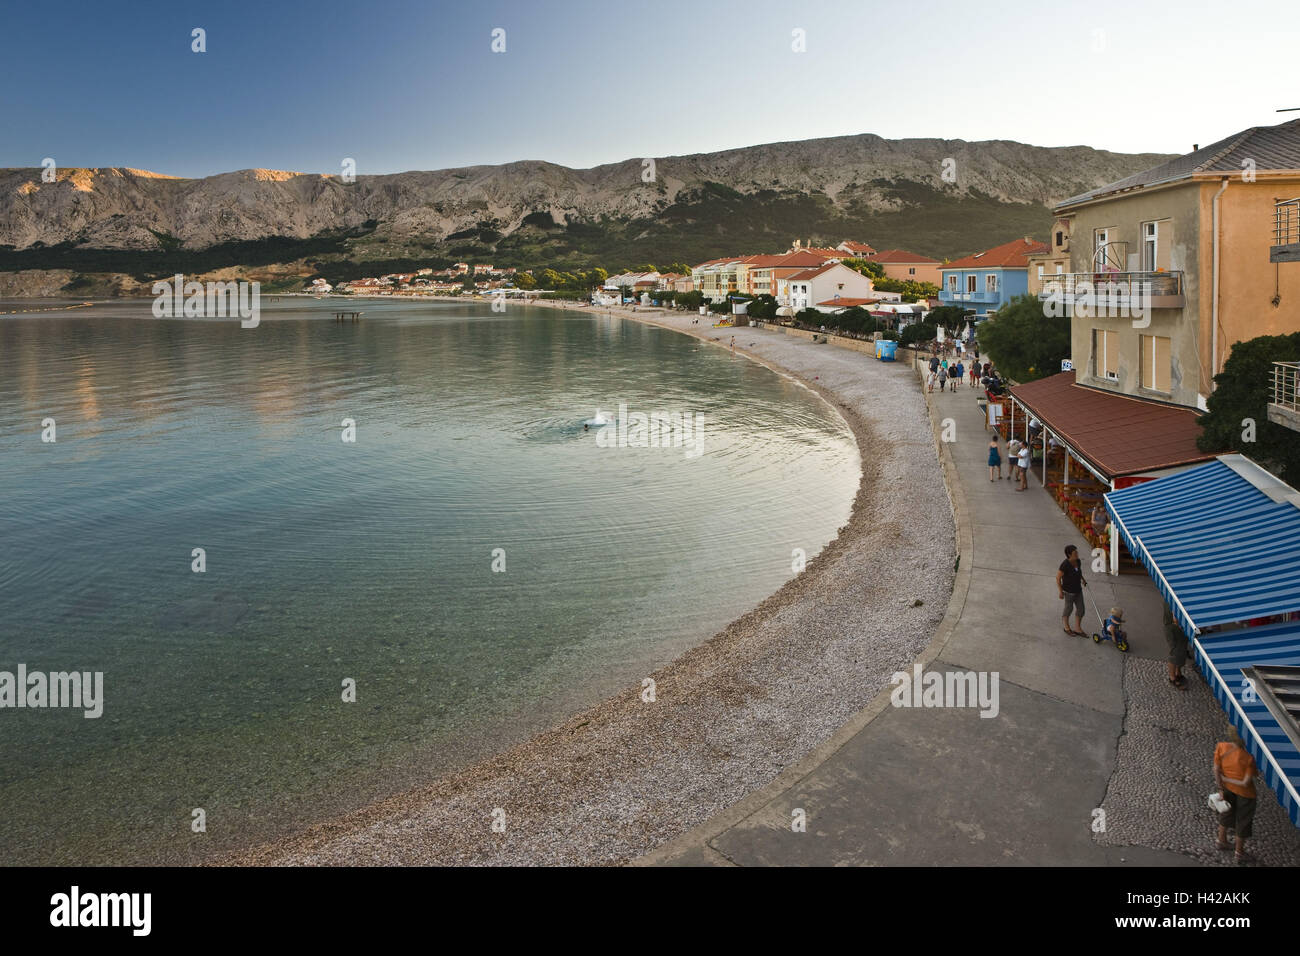 Croatia, Kvarner bay, island Krk, city Baska, beach, bay, sea, - Stock Image